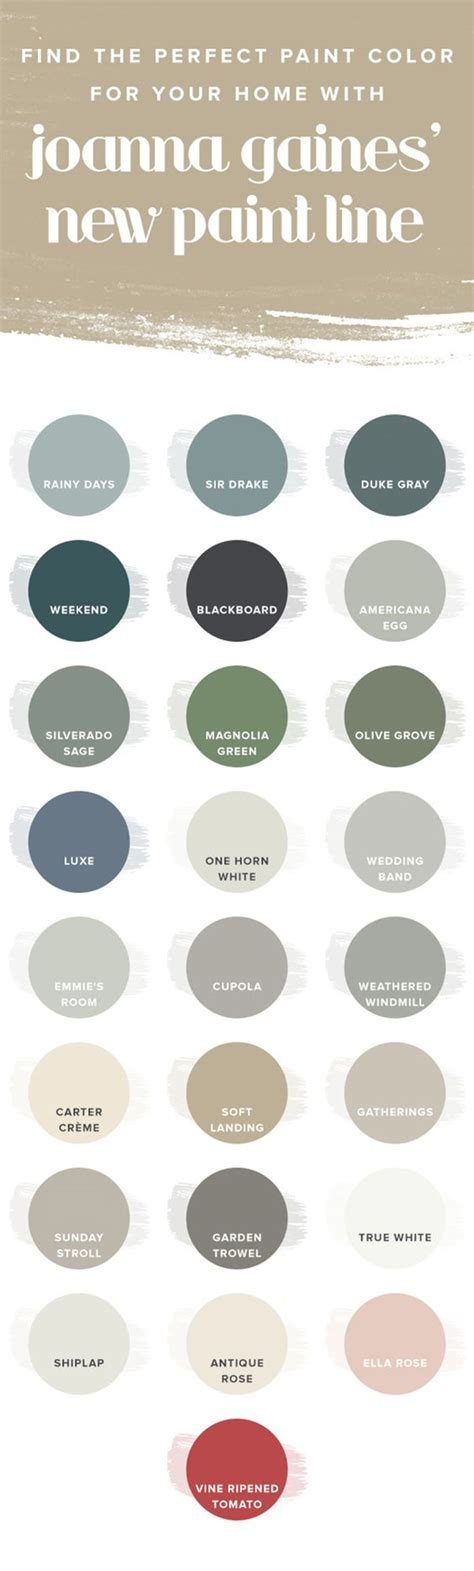 paint colors in joanna gaines home how to decorate like joanna gaines